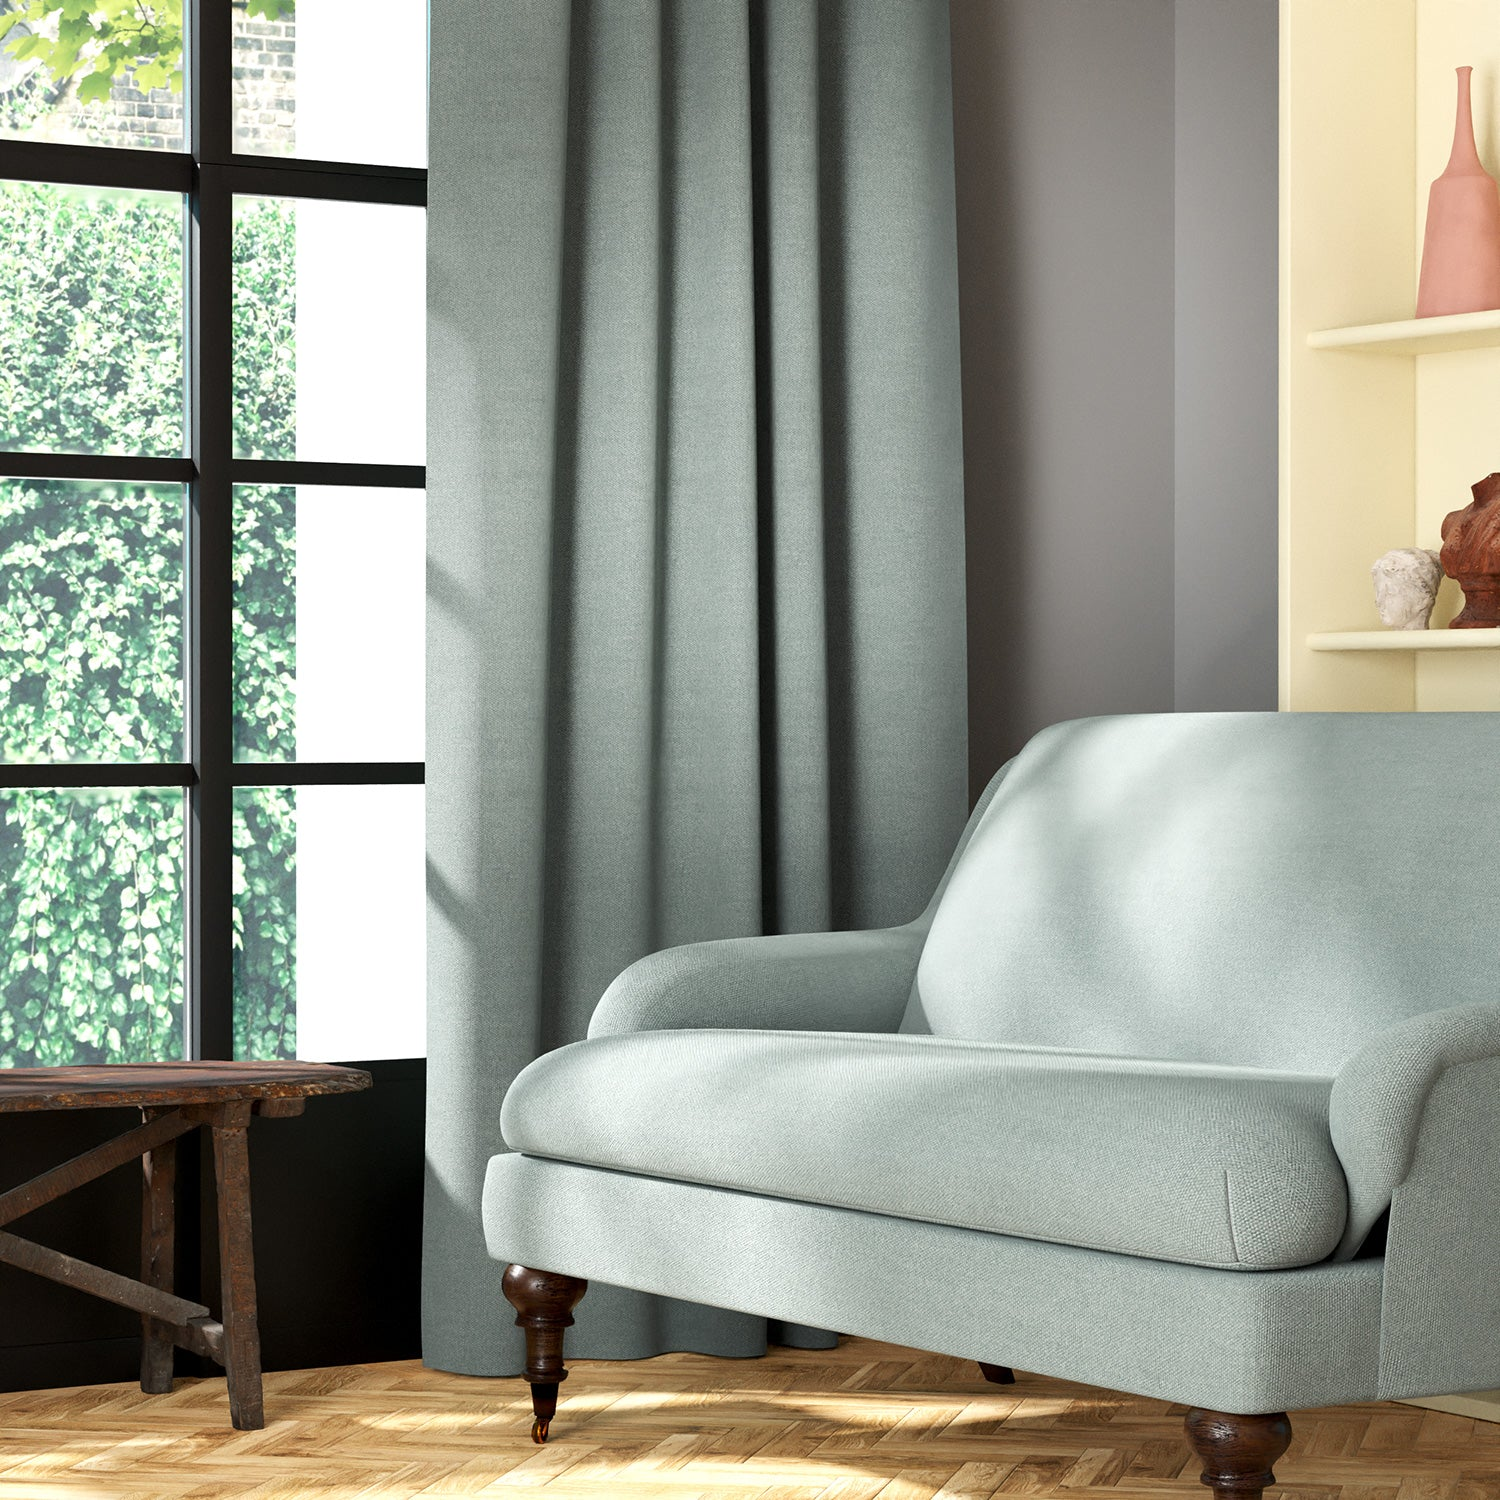 Living room featuring a sofa and curtains in a plain baby blue eco-friendly fabric